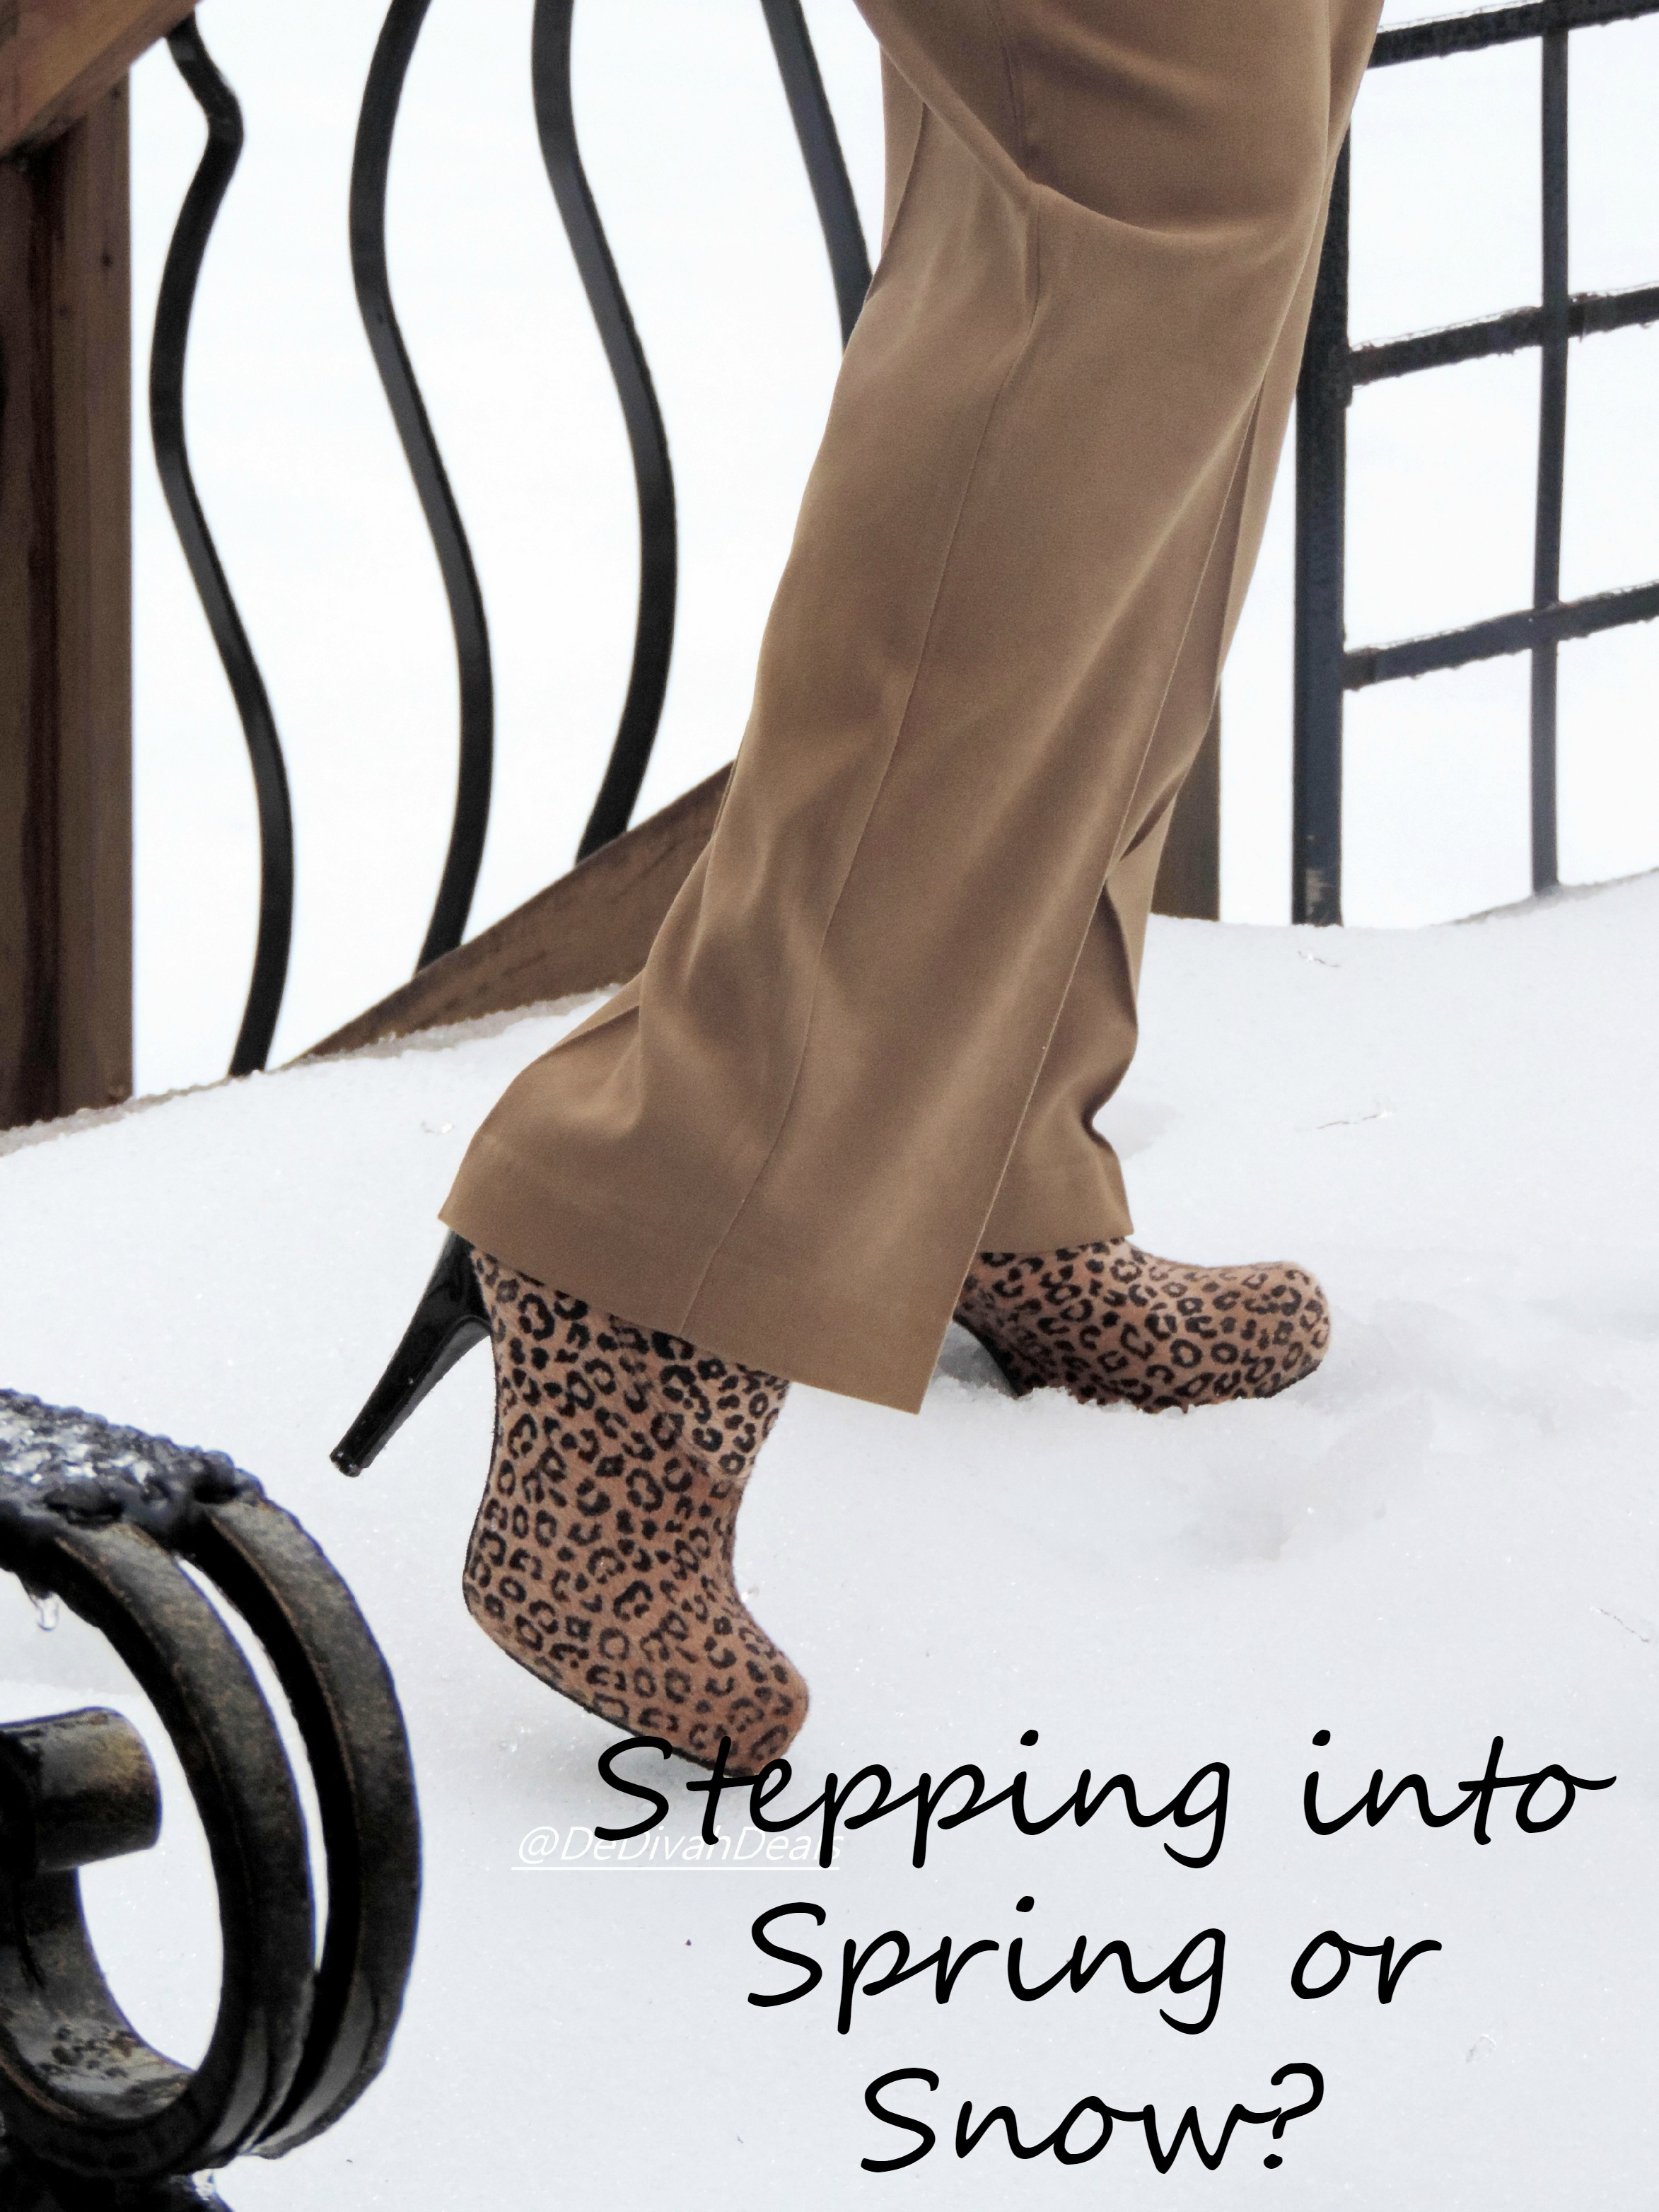 Stepping Into: Stepping Into Spring Or Snow?